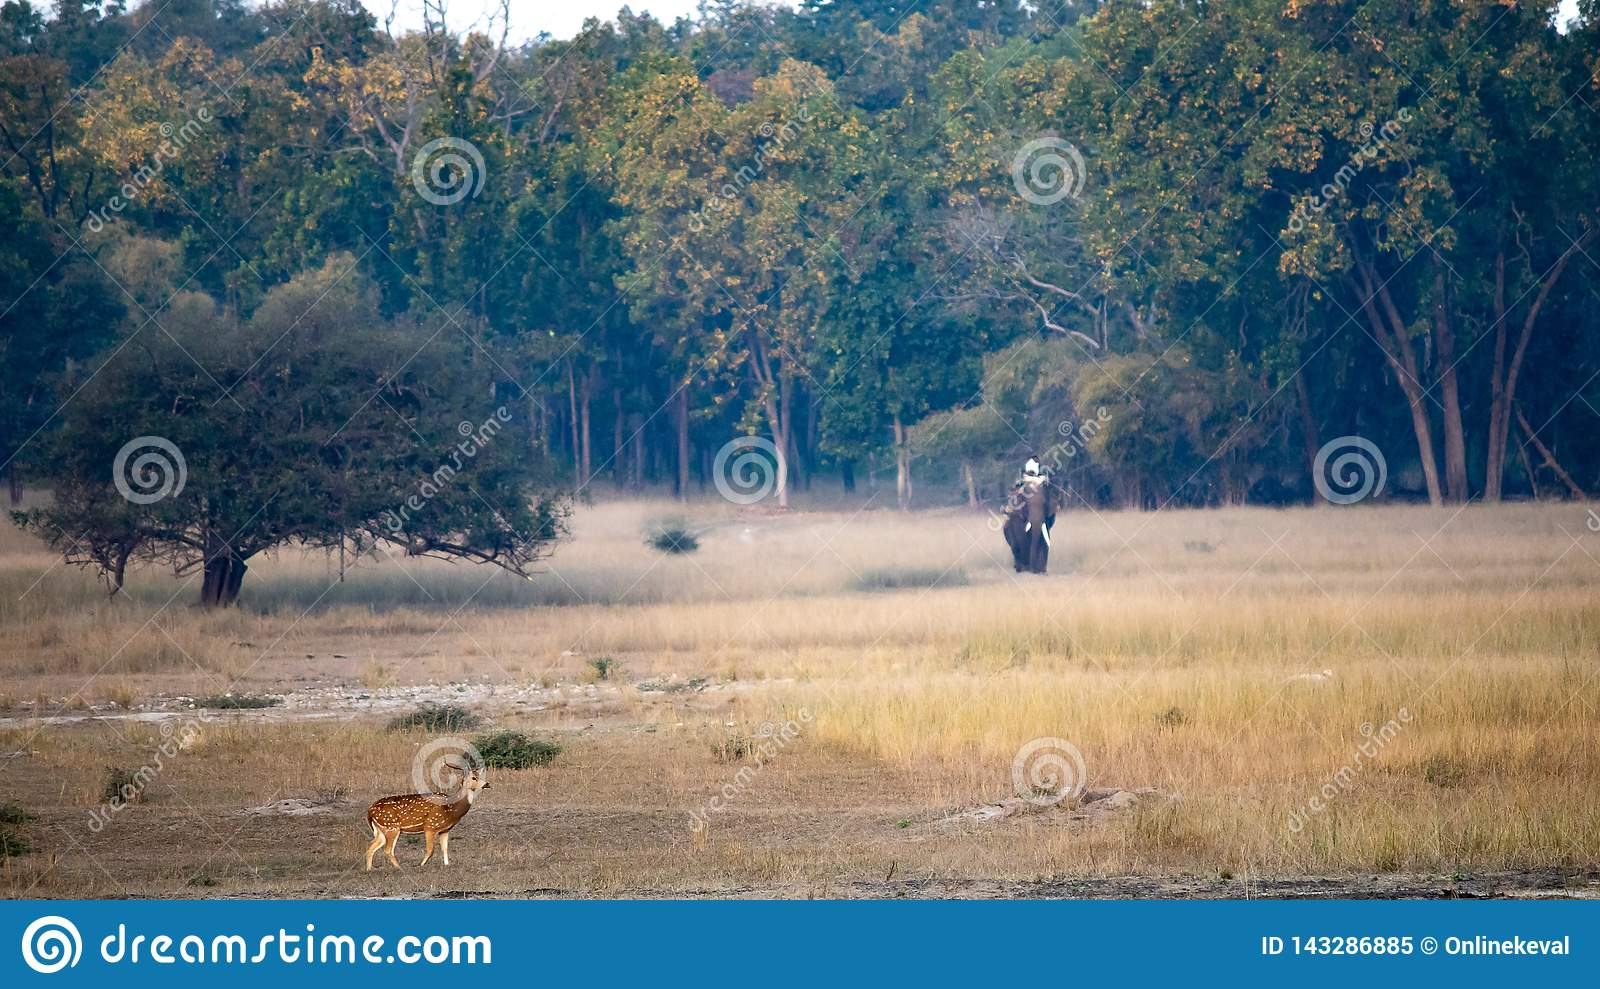 A landscape scenery click of spotted deer and elephant